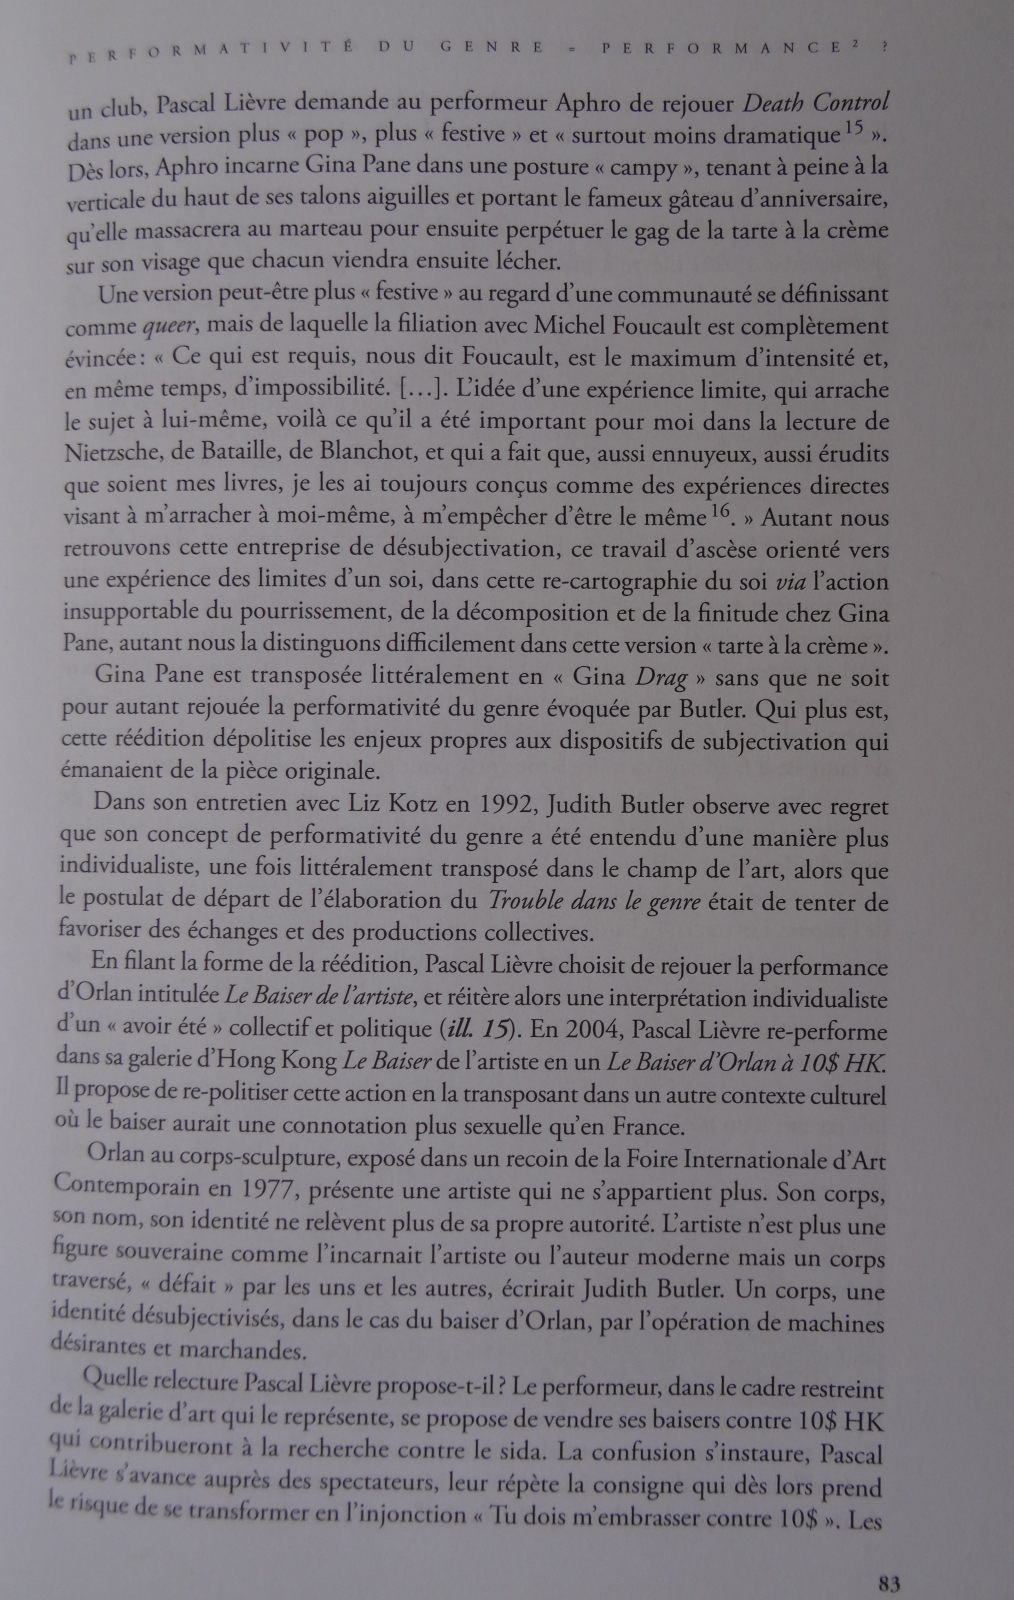 pascal-lievre-la-performance-entre-archives-et-pratiques-contemporaines03